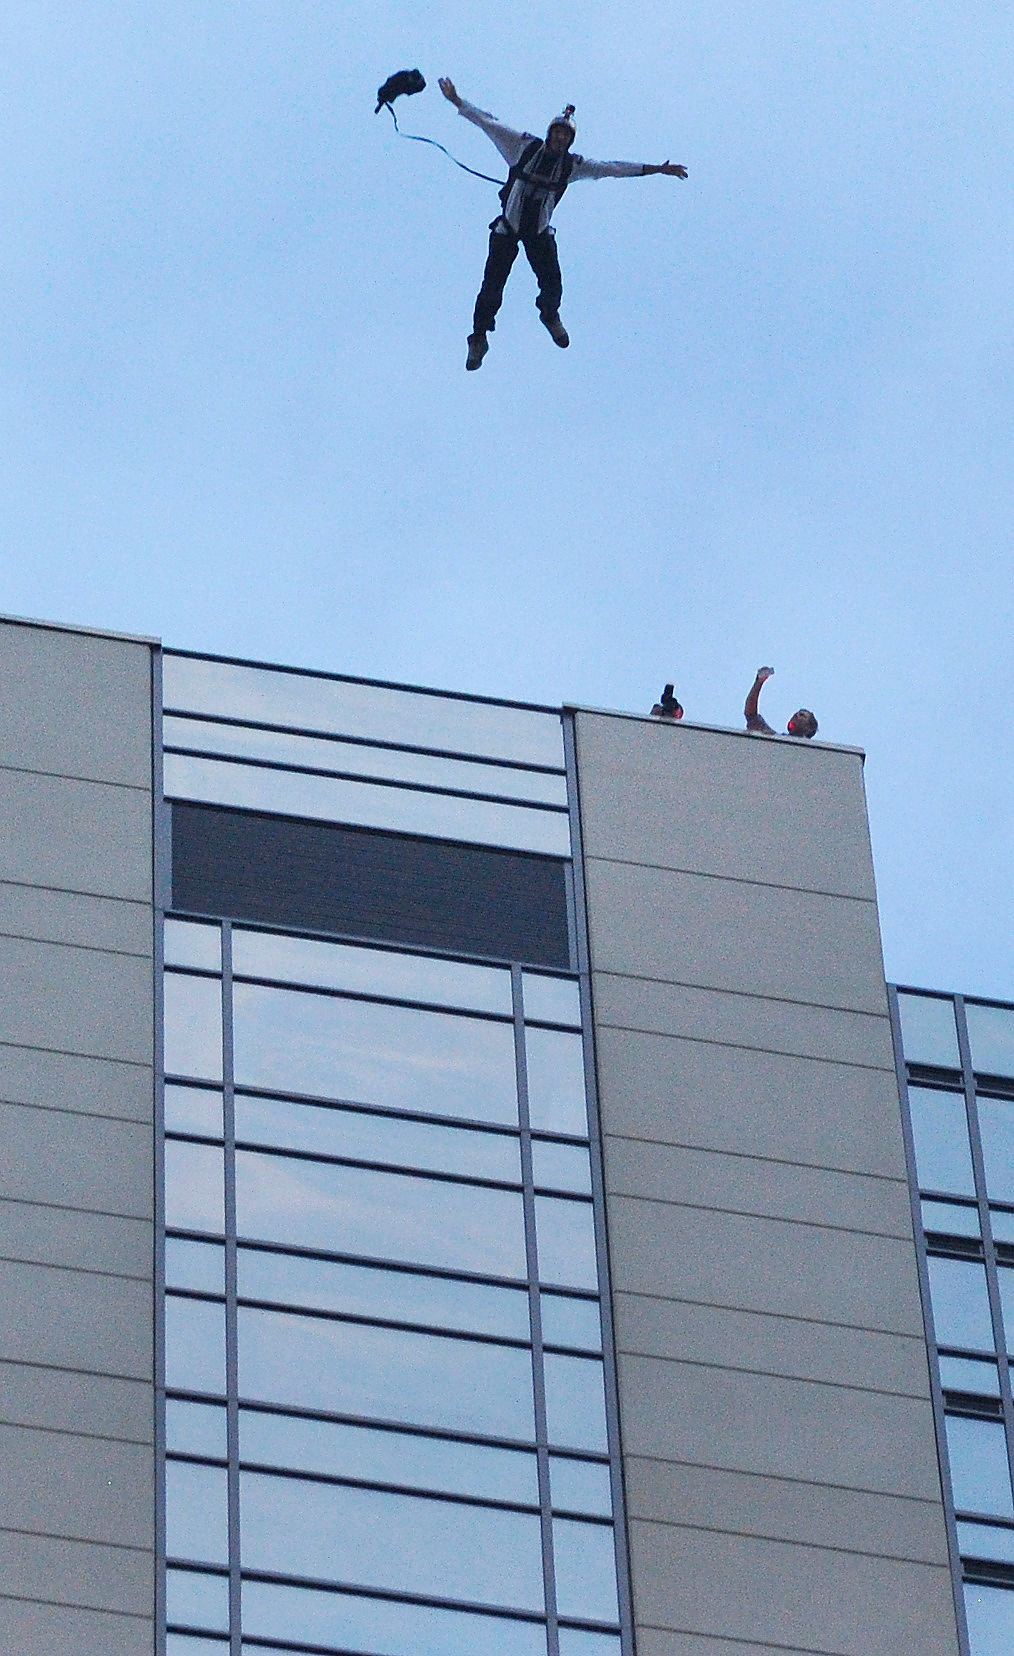 . Jeff Provenzano jumped from the roof and did a free fall for several seconds. BASE jumpers Miles Daisher and Jeff Provenzano lept off the top of the Four Seasons Hotel in downtown Denver Tuesday night, August 27, 2013 before they each deployed a canopy to make a safe landing in the parking lot.   Photo By Karl Gehring/The Denver Post